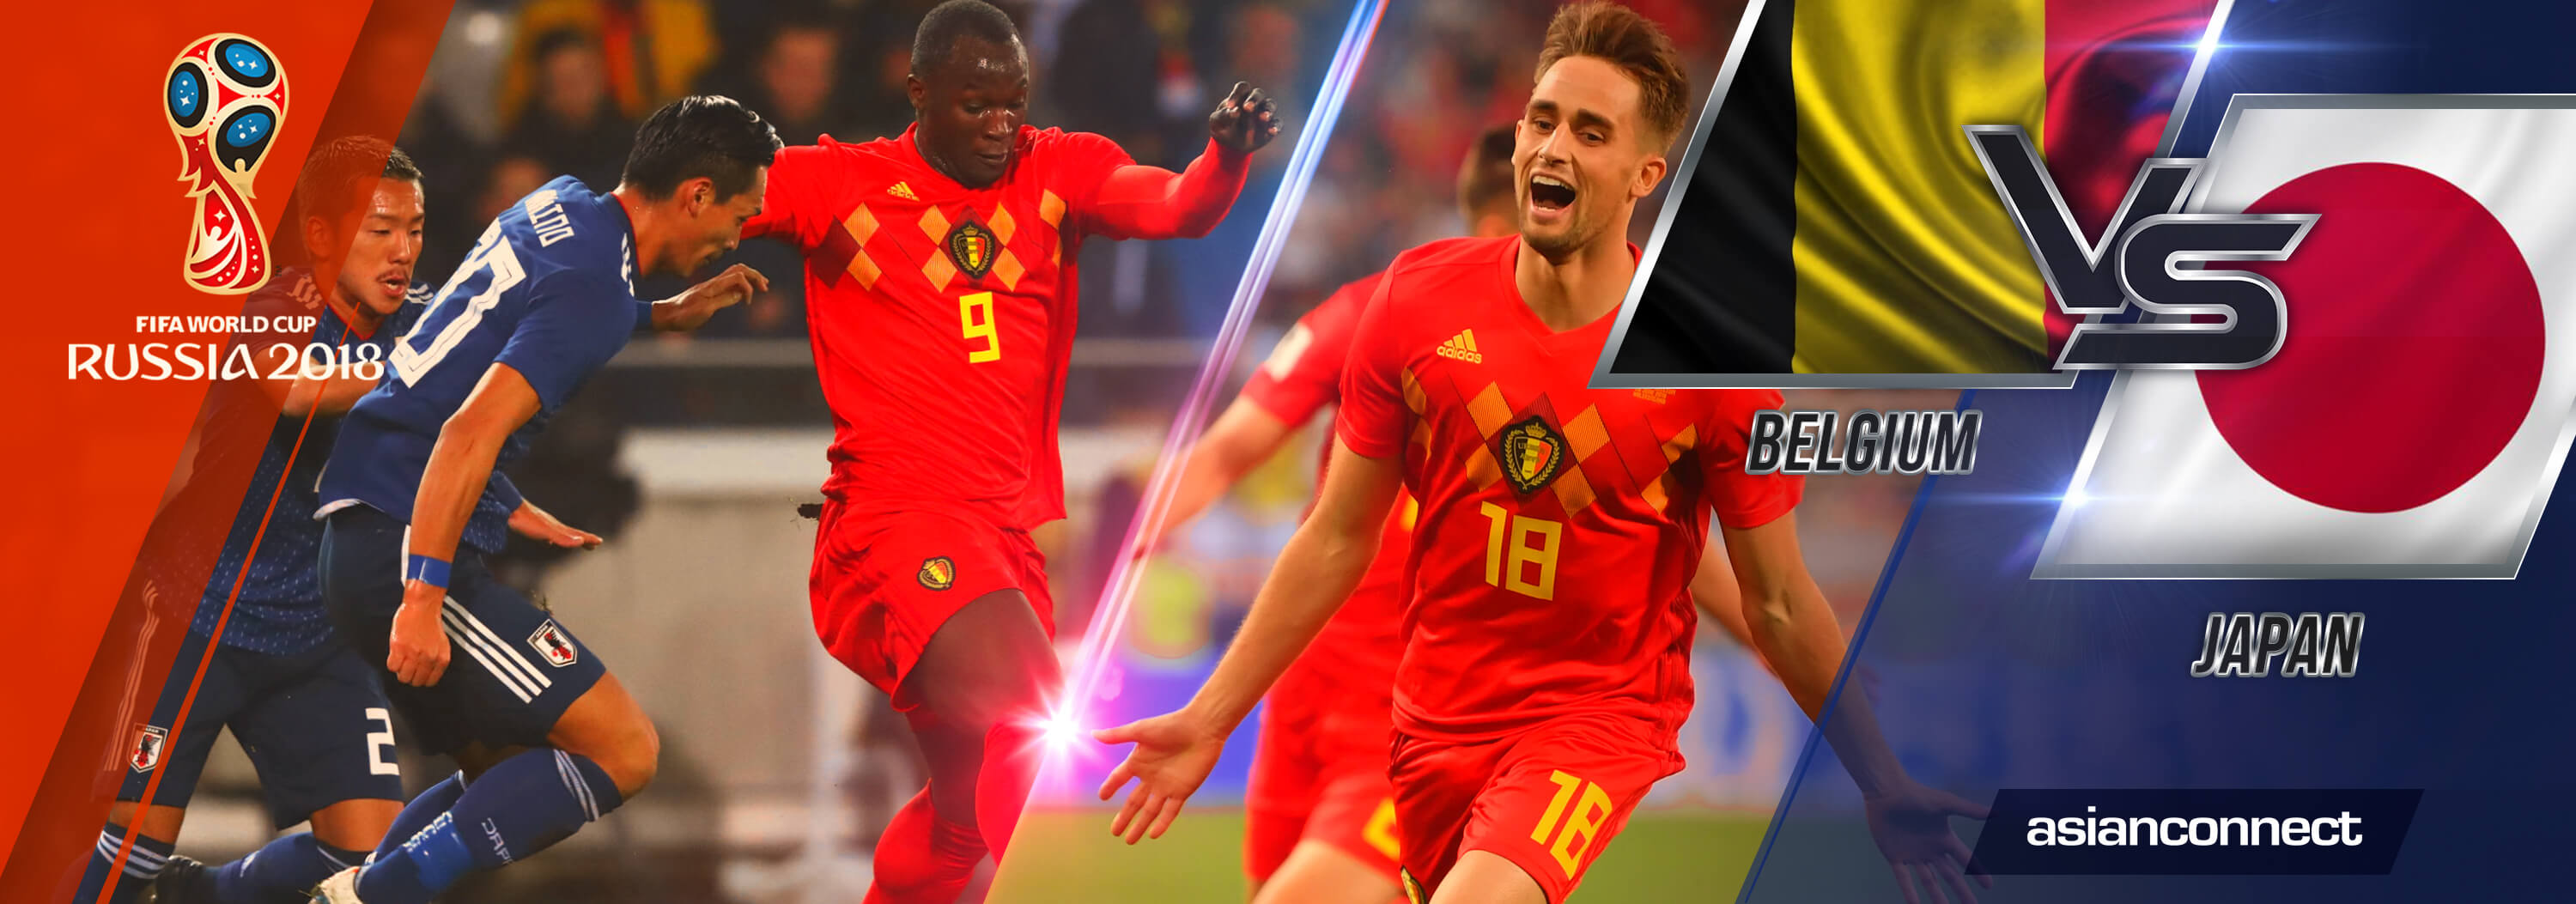 World Cup 2018 Belgium vs Japan